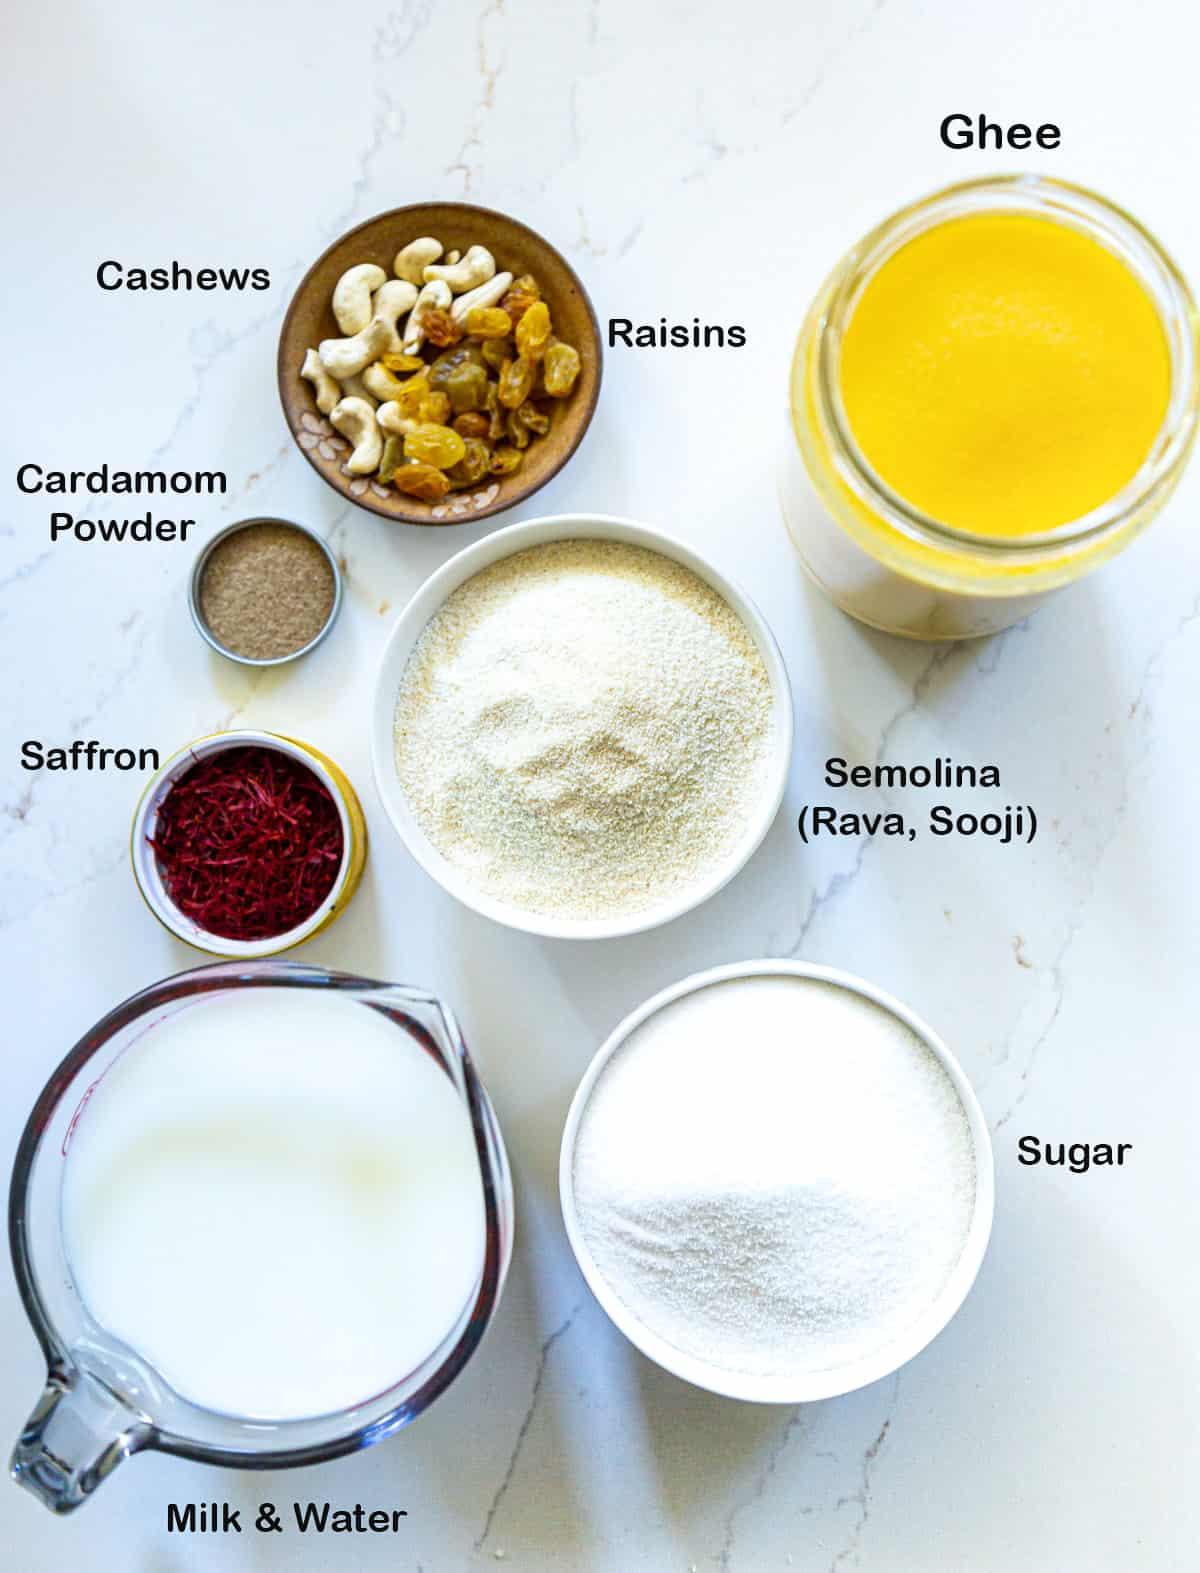 Ingredients for rava sheera laid out on marble surface